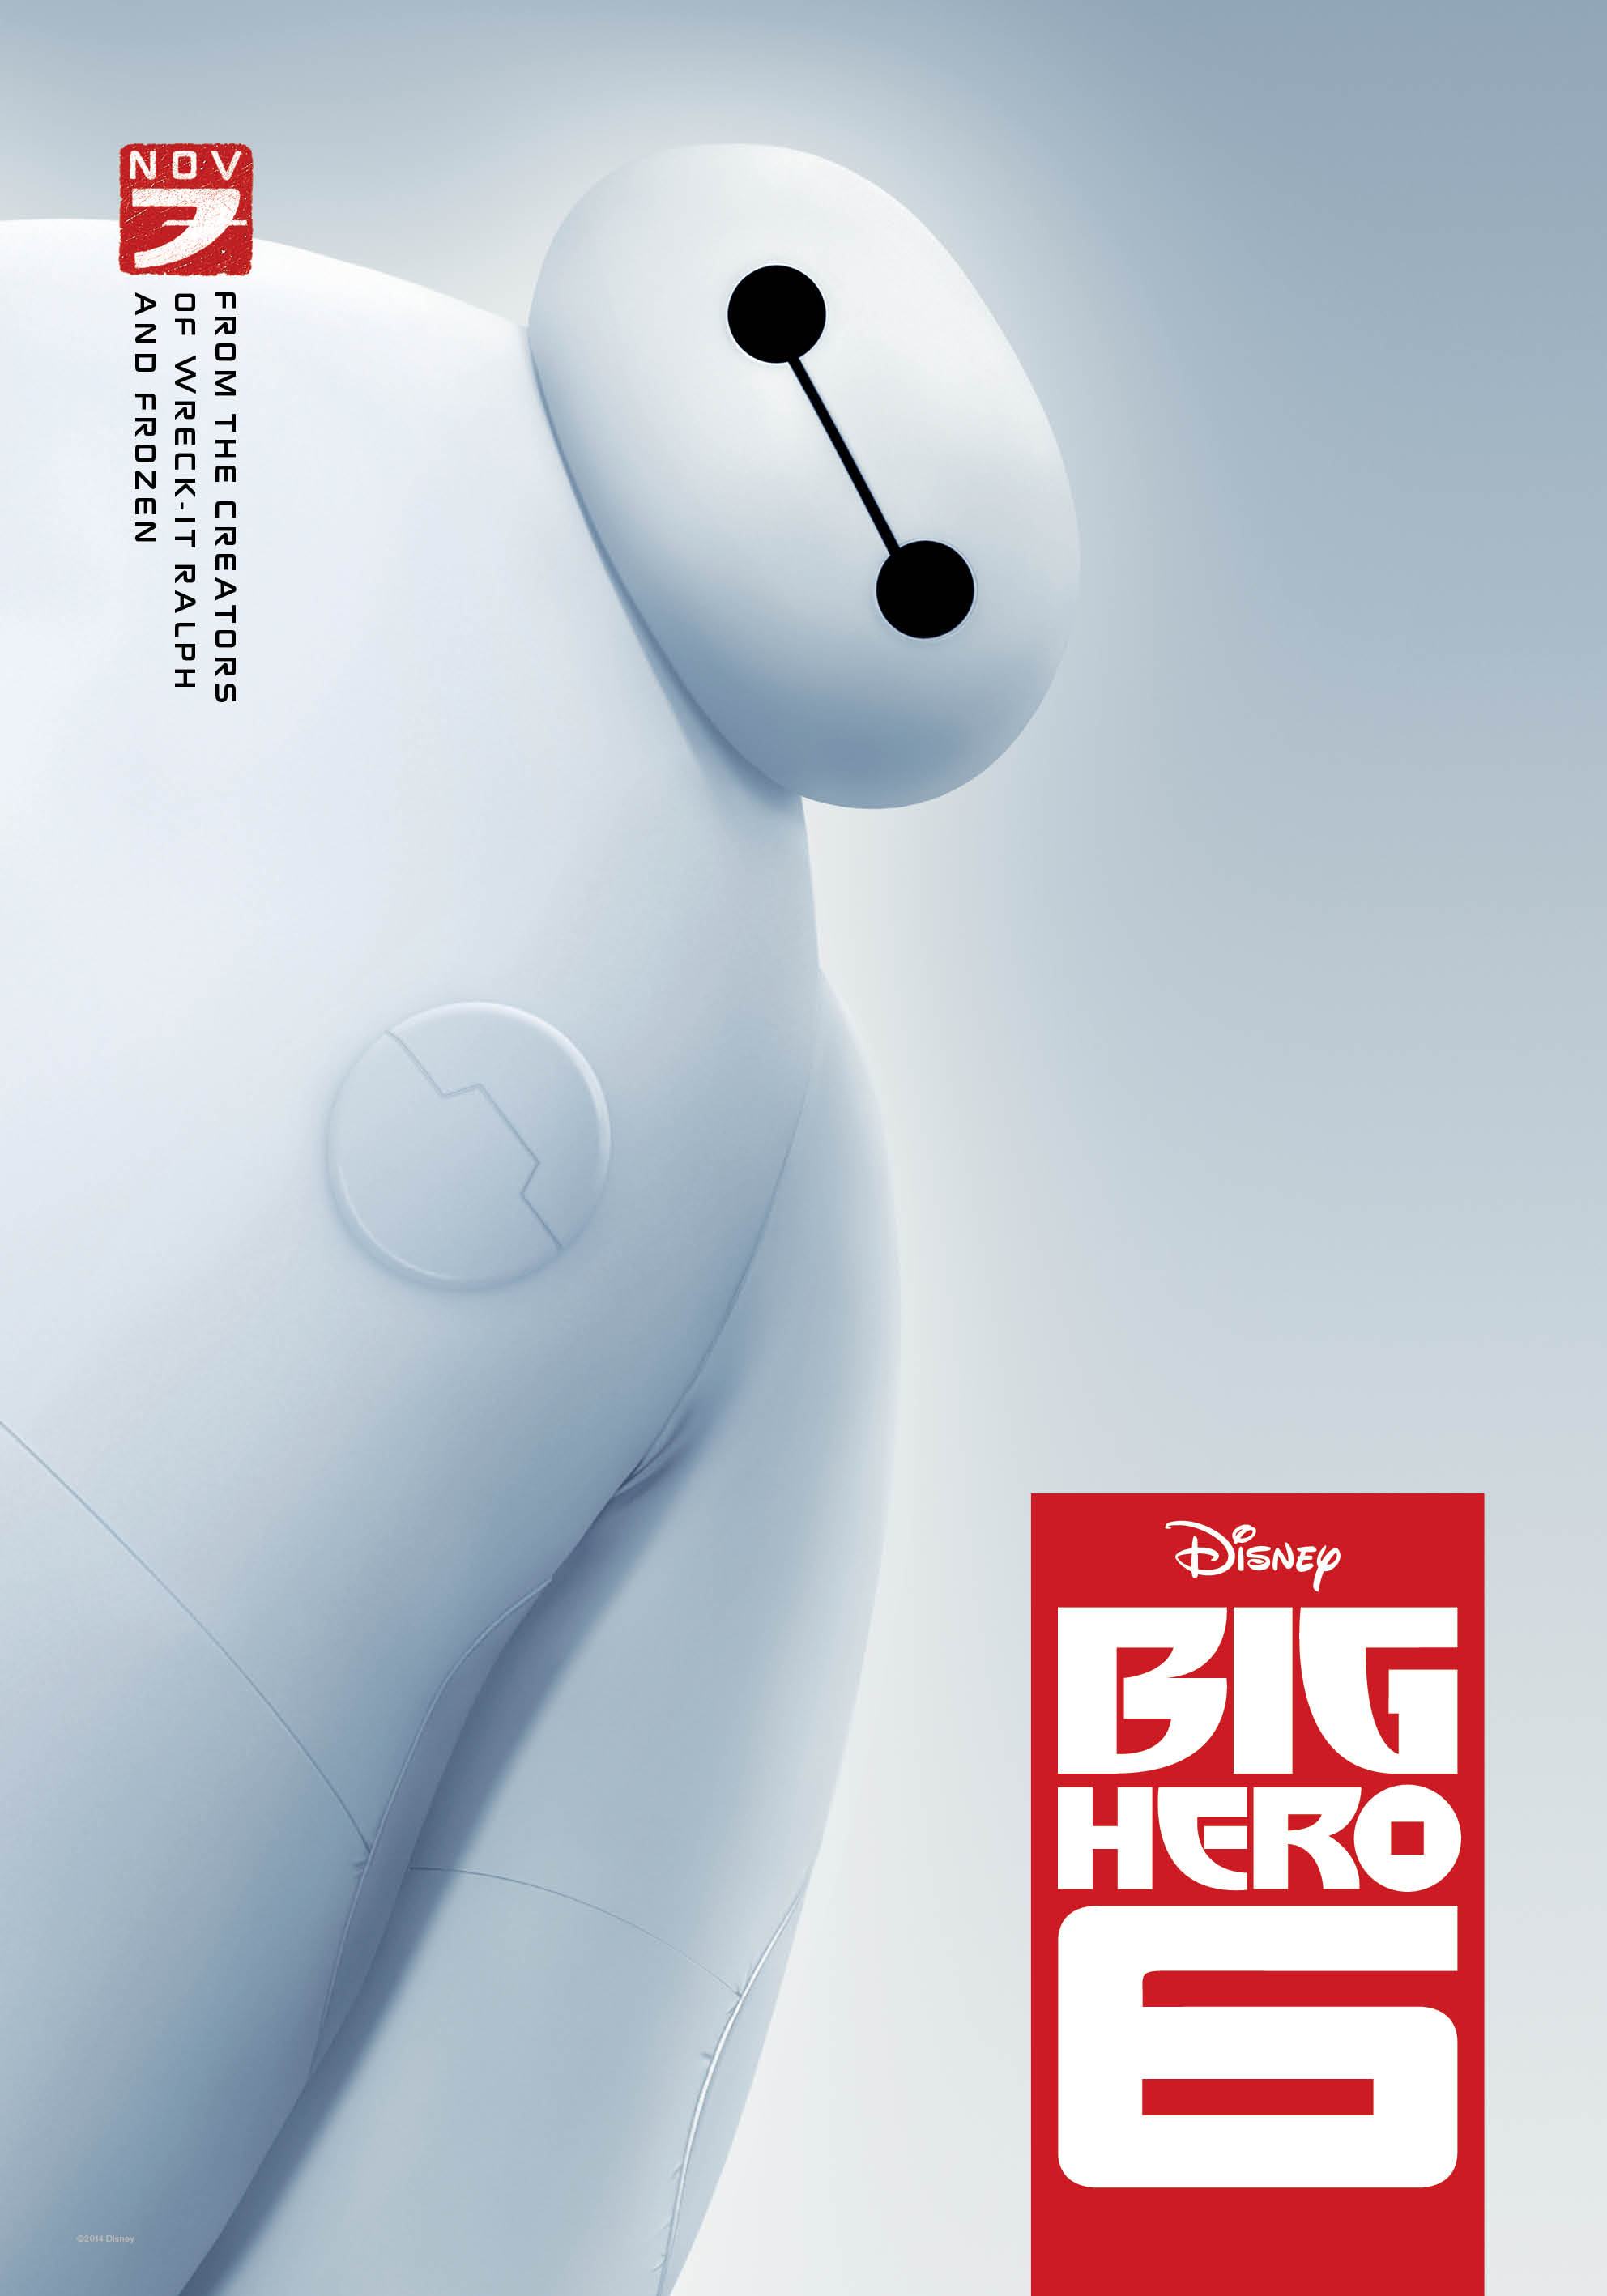 New clip of Disney's BIG HERO 6